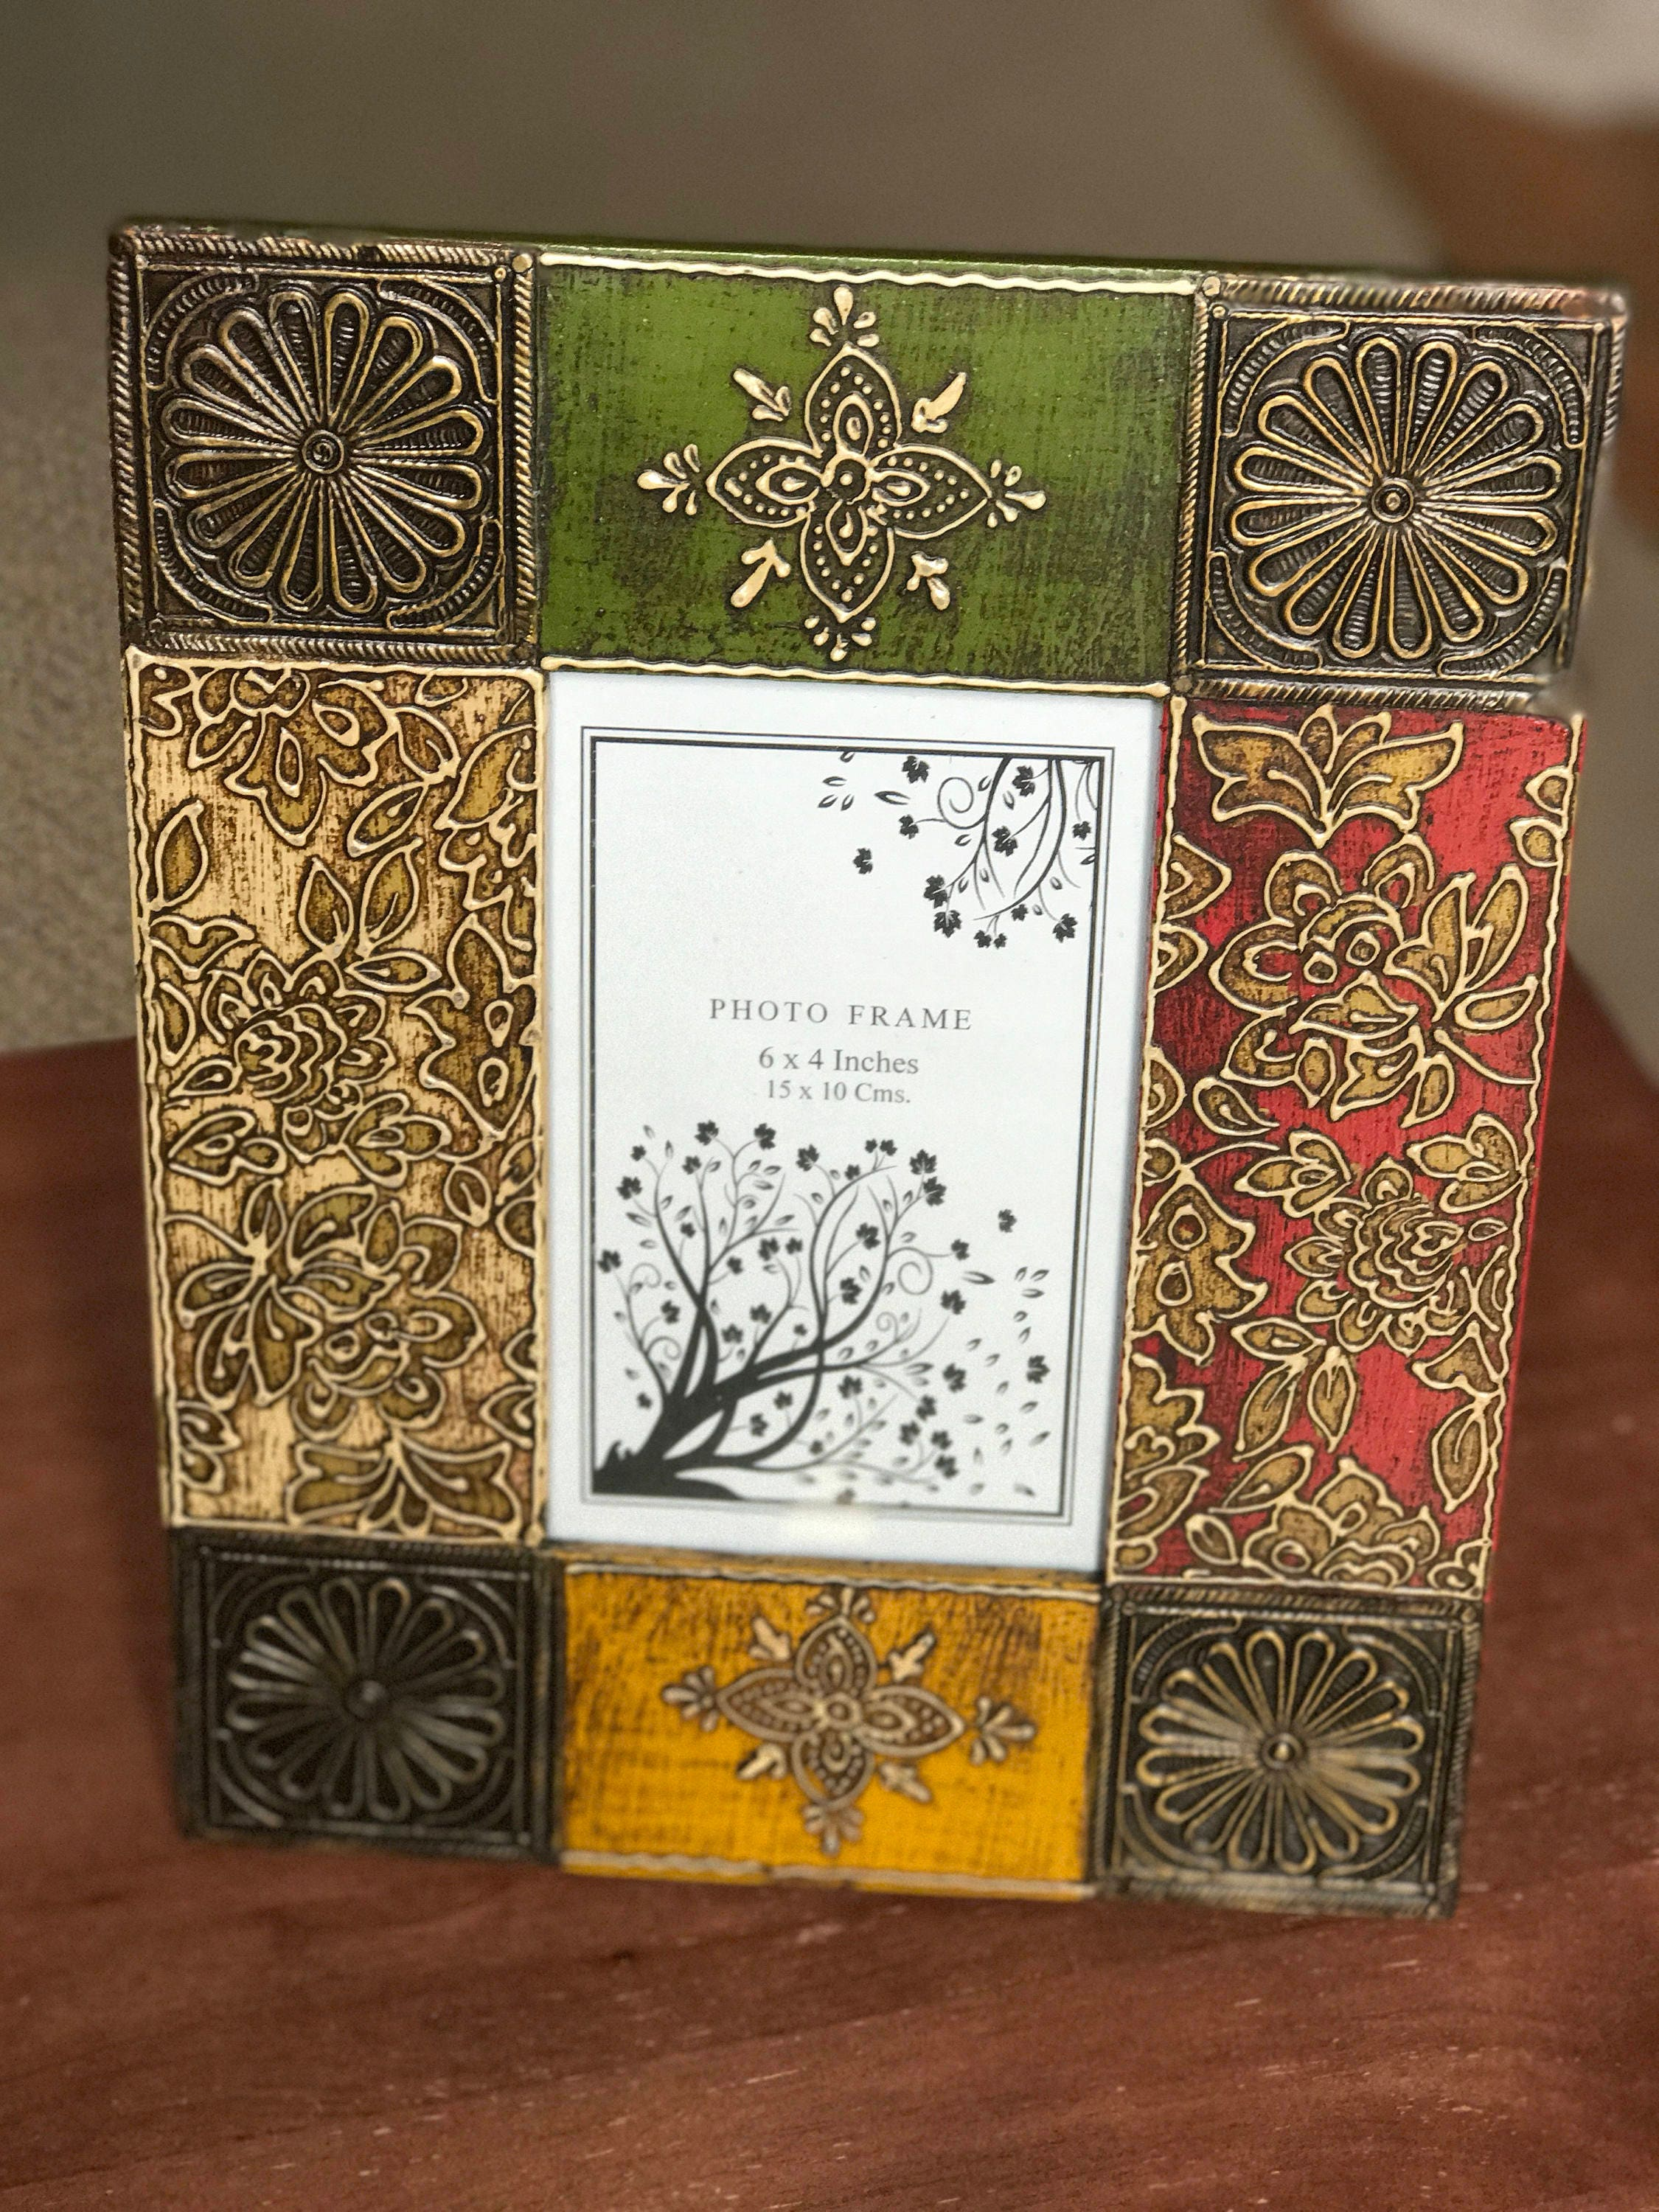 Multicolored wood picture frame from india 8x10 photo frame fits multicolored wood picture frame from india 8x10 photo frame fits 4x6 pics handmade painted and embossed wood frame with brass fitting jeuxipadfo Images